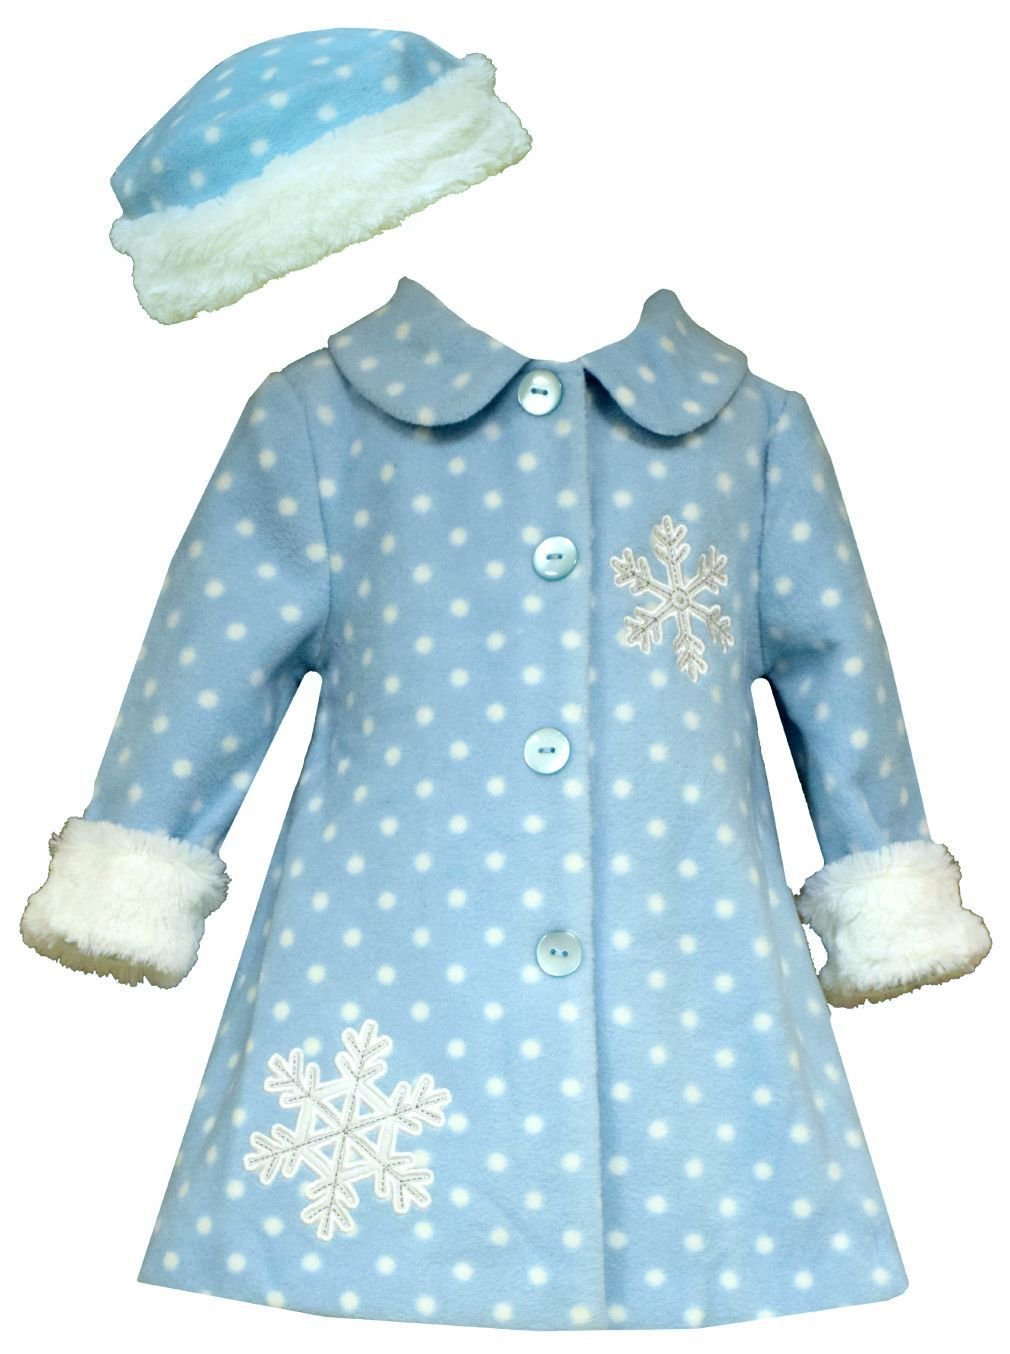 Bonnie Jean Girls Frosty Aqua Snowflake Faux Fur Coat & Hat, Aqua, 4T